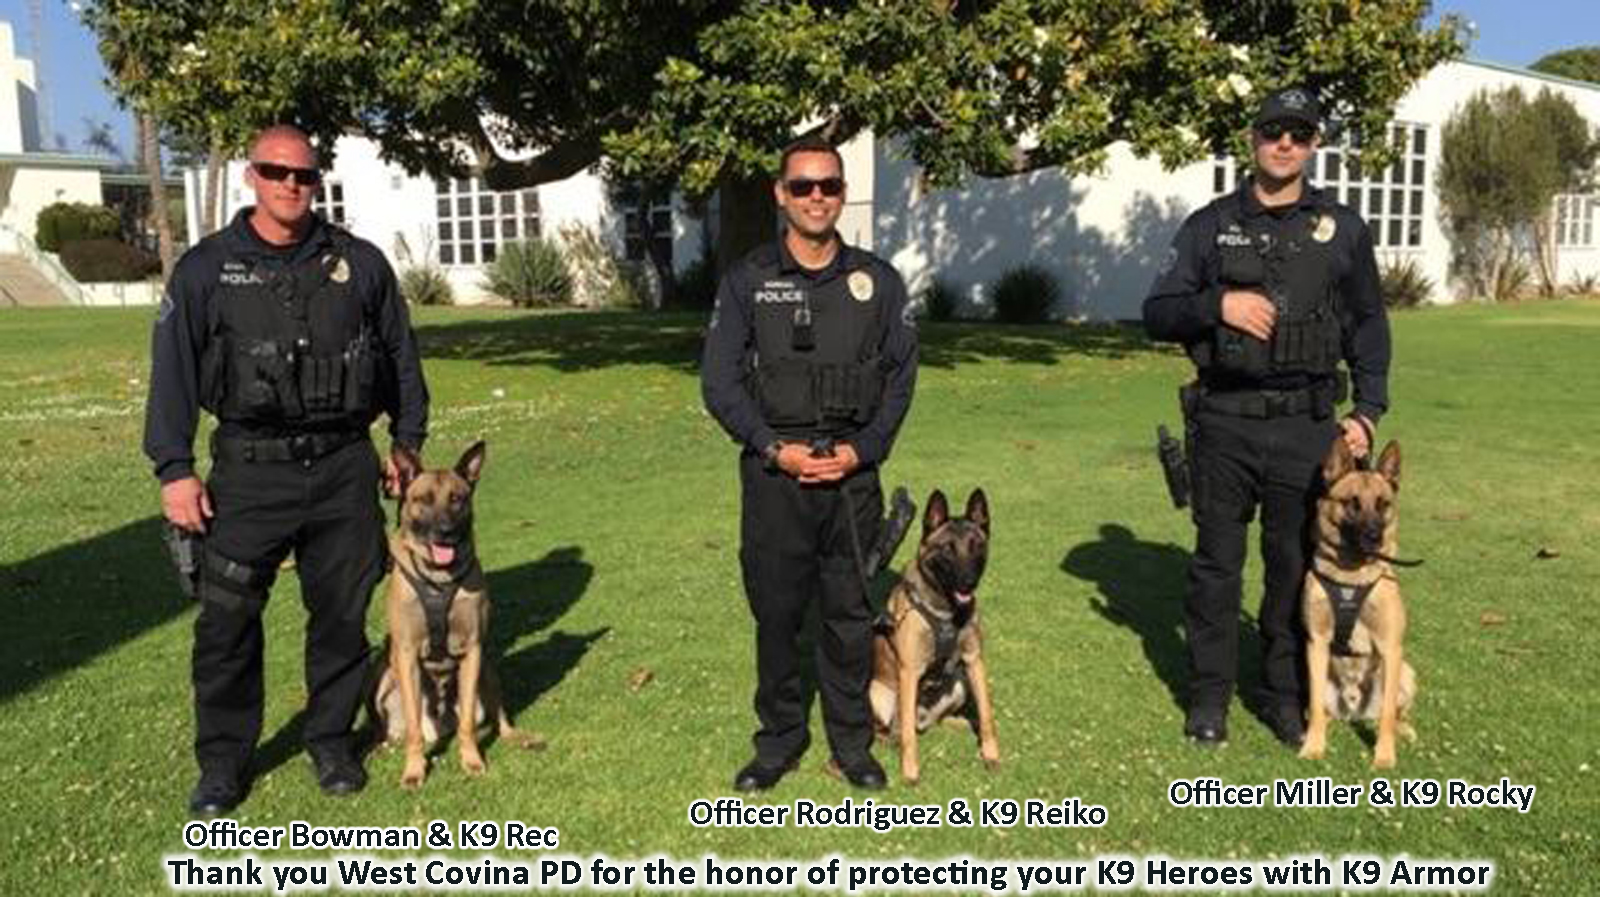 West Covina PD K9 Heroes Officers Bowman and K9 Rec, Officer Rodriguez and Reiko, Officer Miller and K9 Rocky